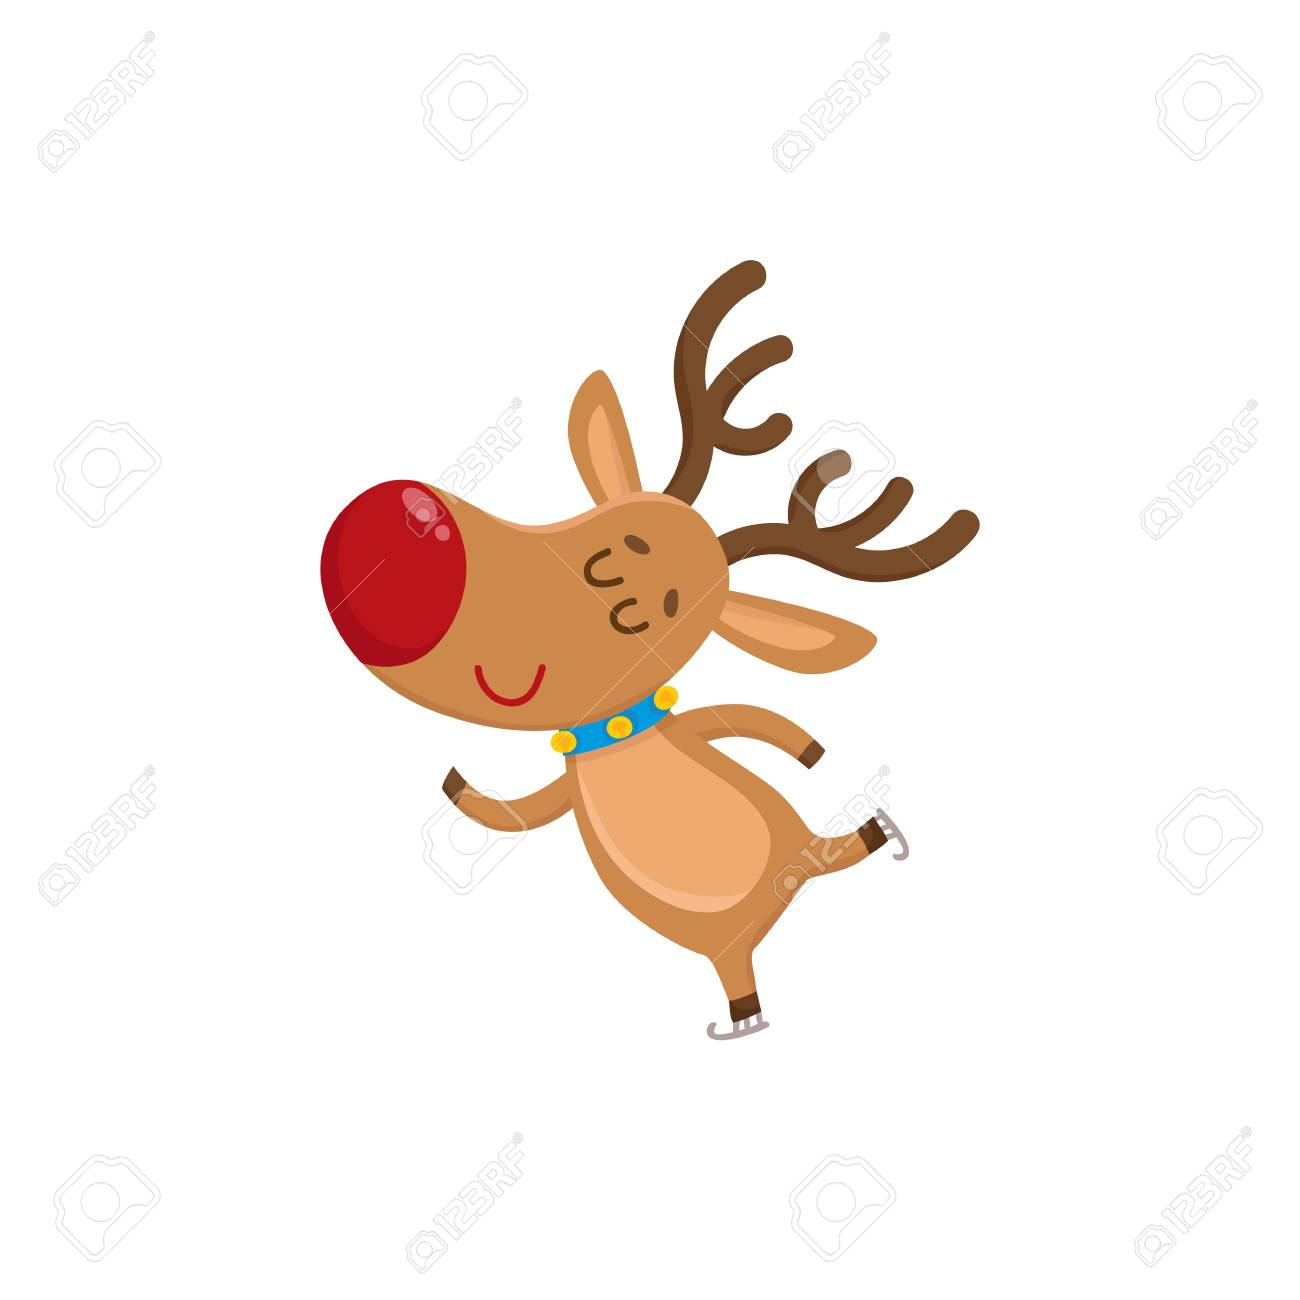 Cute And Funny Christmas Reindeer Ice Skating Happily Cartoon Vector Illustration Isolated On White Background